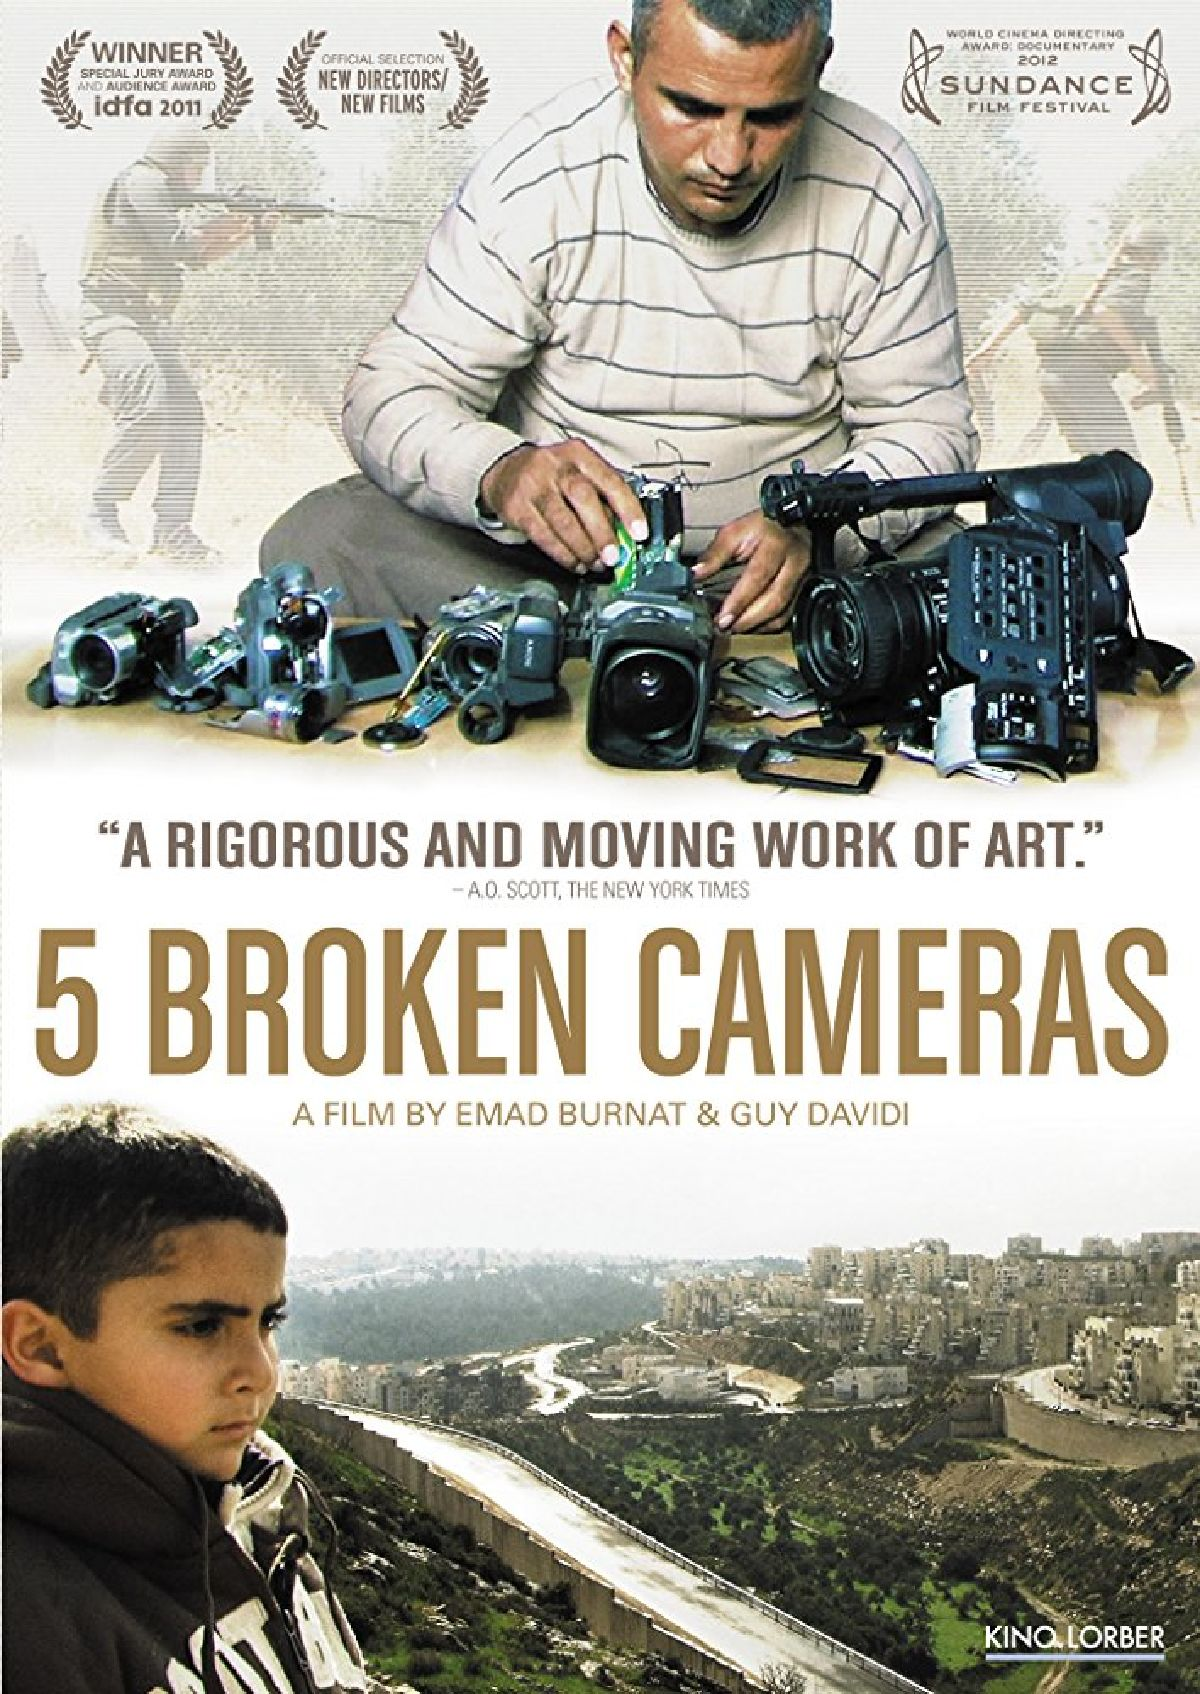 '5 Broken Cameras' movie poster